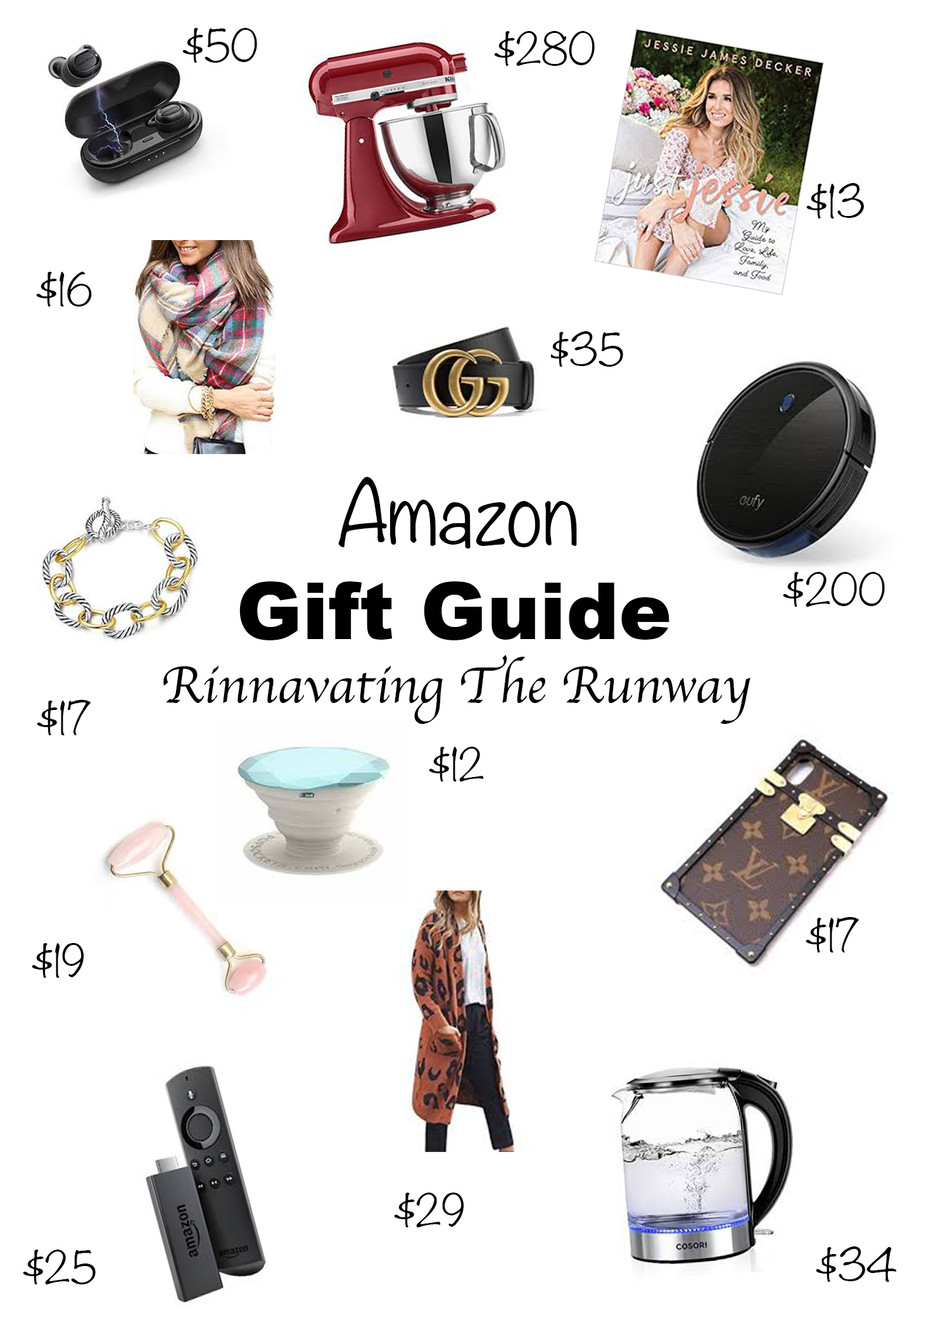 Last Minute Shopping: Amazon Gift Guide